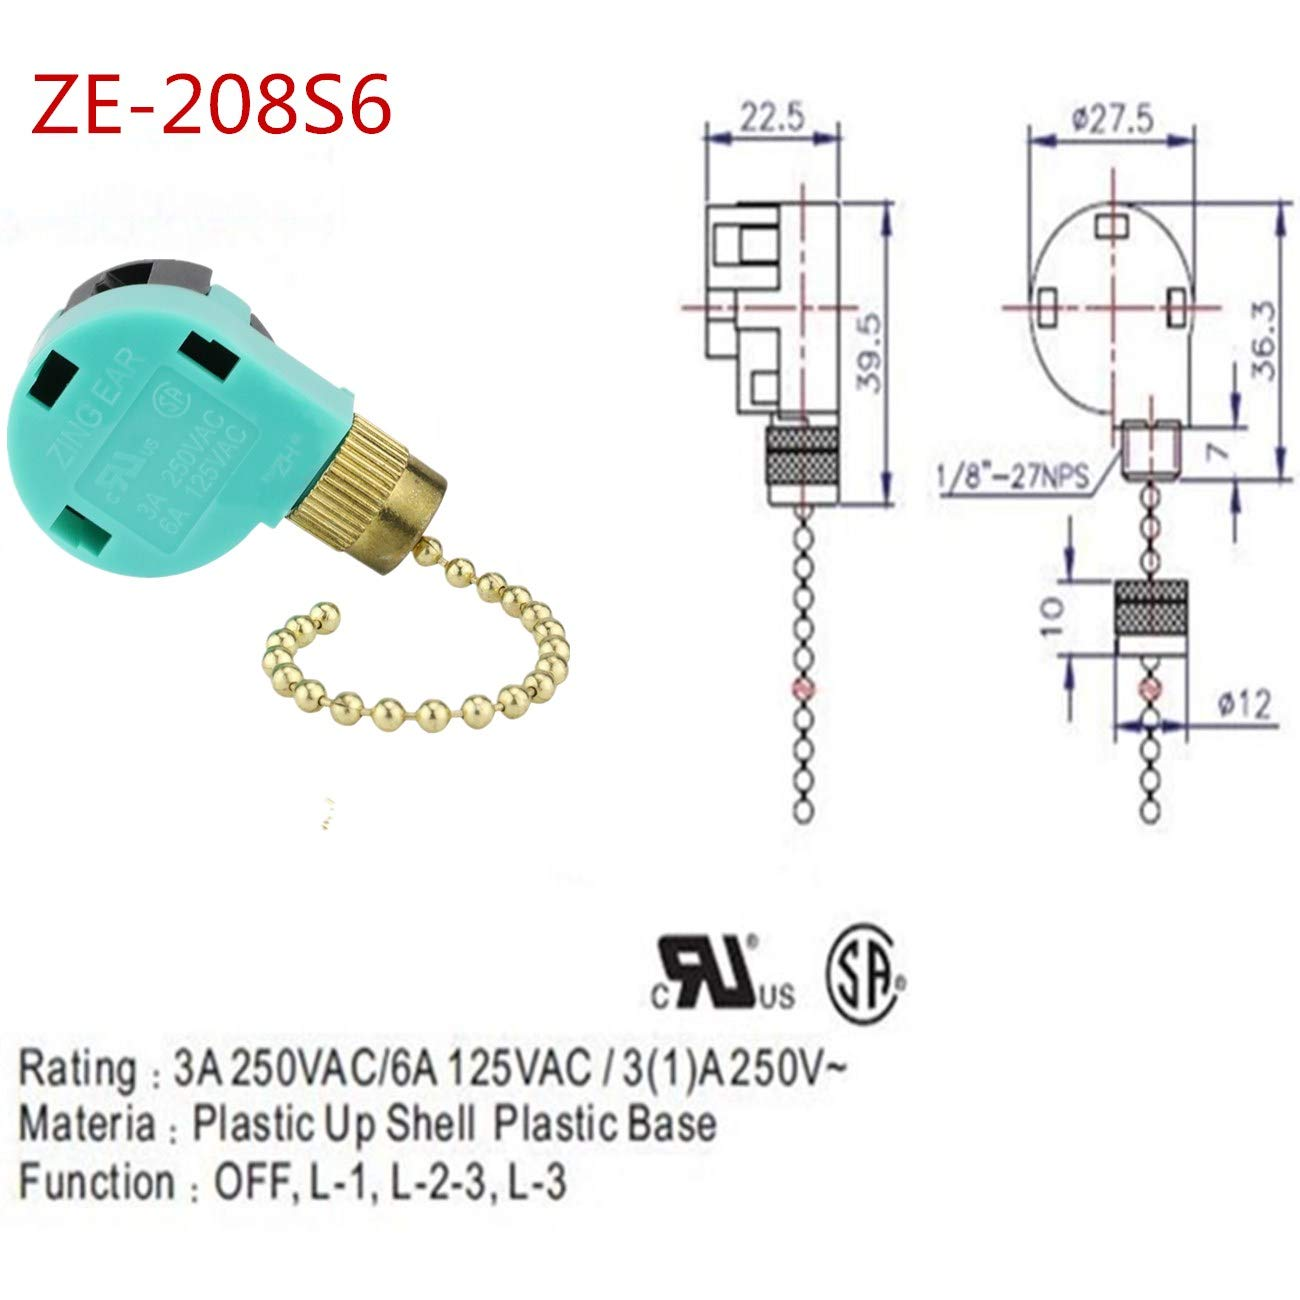 F67 Zing Ear Switch Ceiling Fan Wiring Diagram Wiring Library